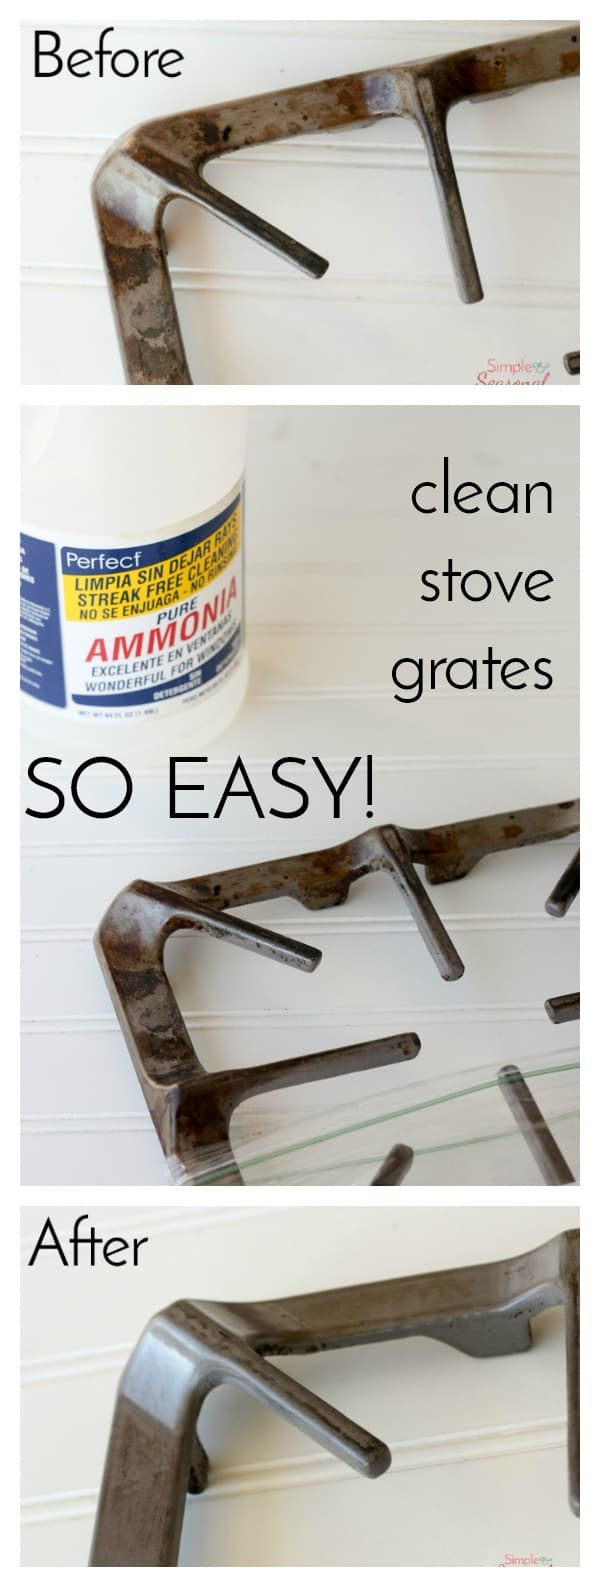 I will never clean my stove the hard way again! This is hands down the EASIEST way to clean stove grates. No more soaking and scrubbing for hours! via @nmburk